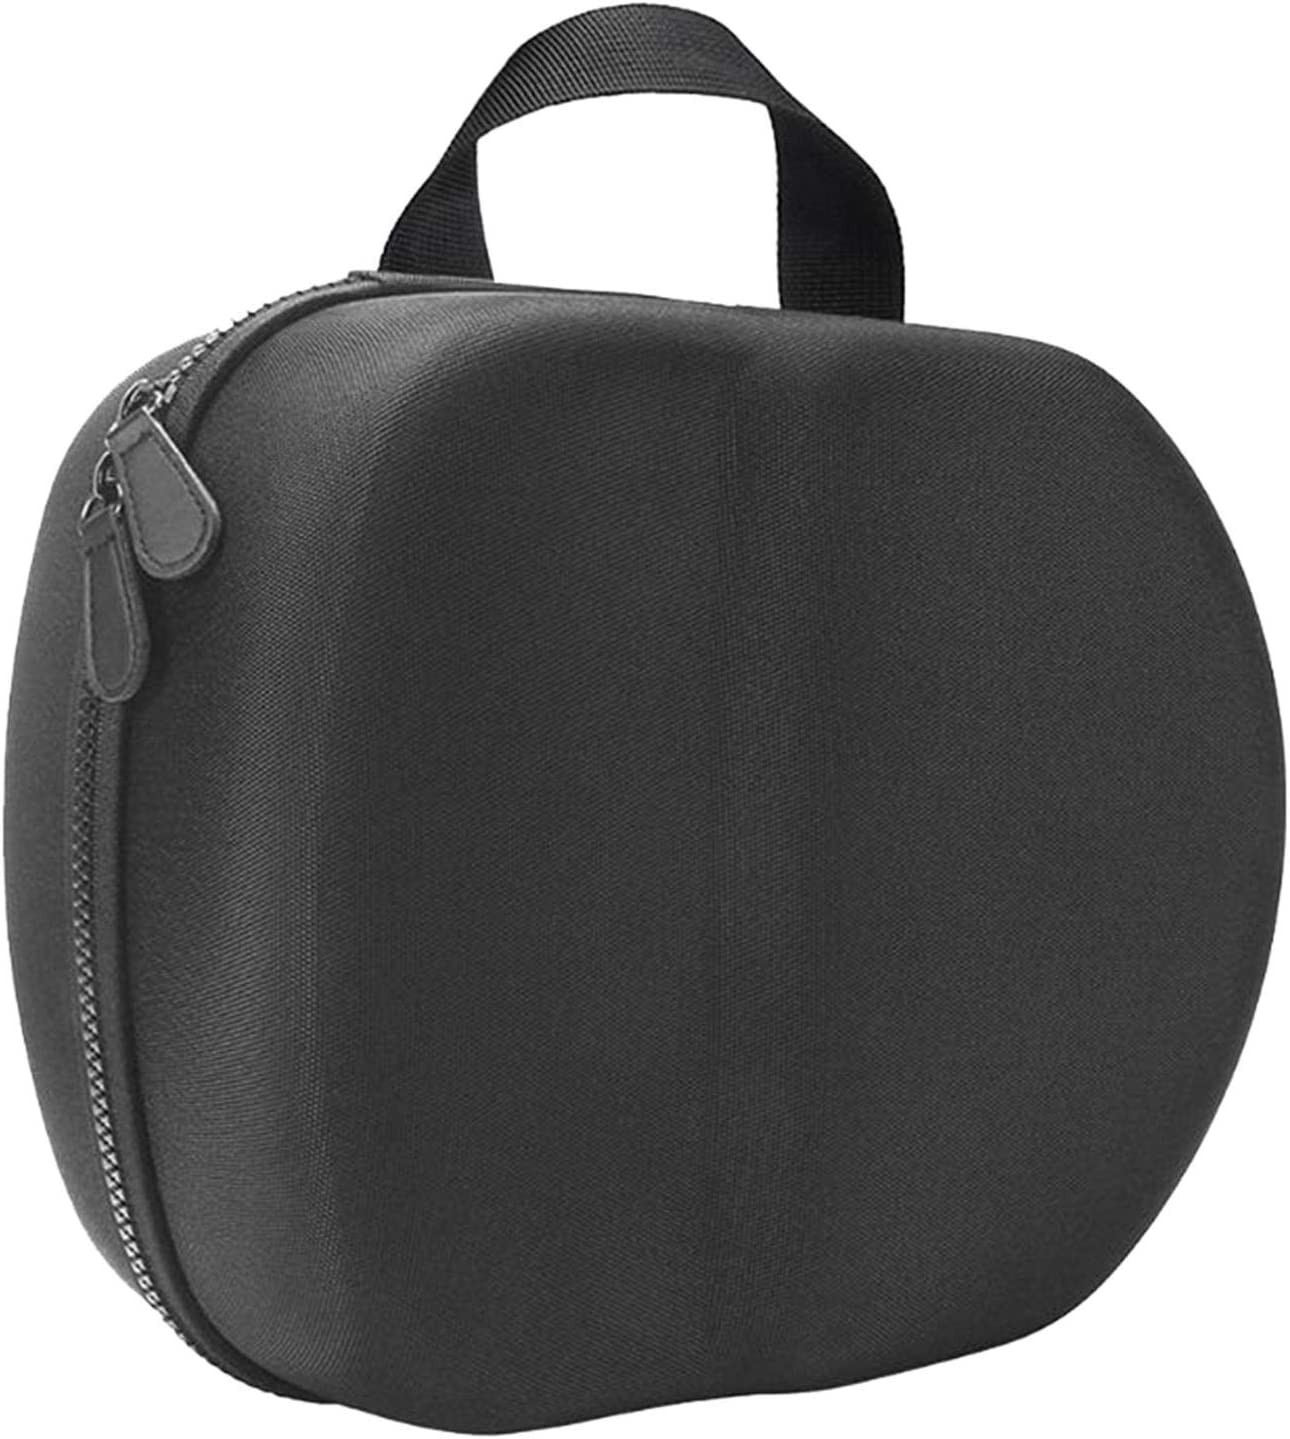 beiyoule Hard Carrying Case for Oculus Quest 2 All-in-one VR Gaming Headset and Controllers,Crush Resistant, Anti-Shock, Portable Protection,Hard EVA Carry Case with Strap